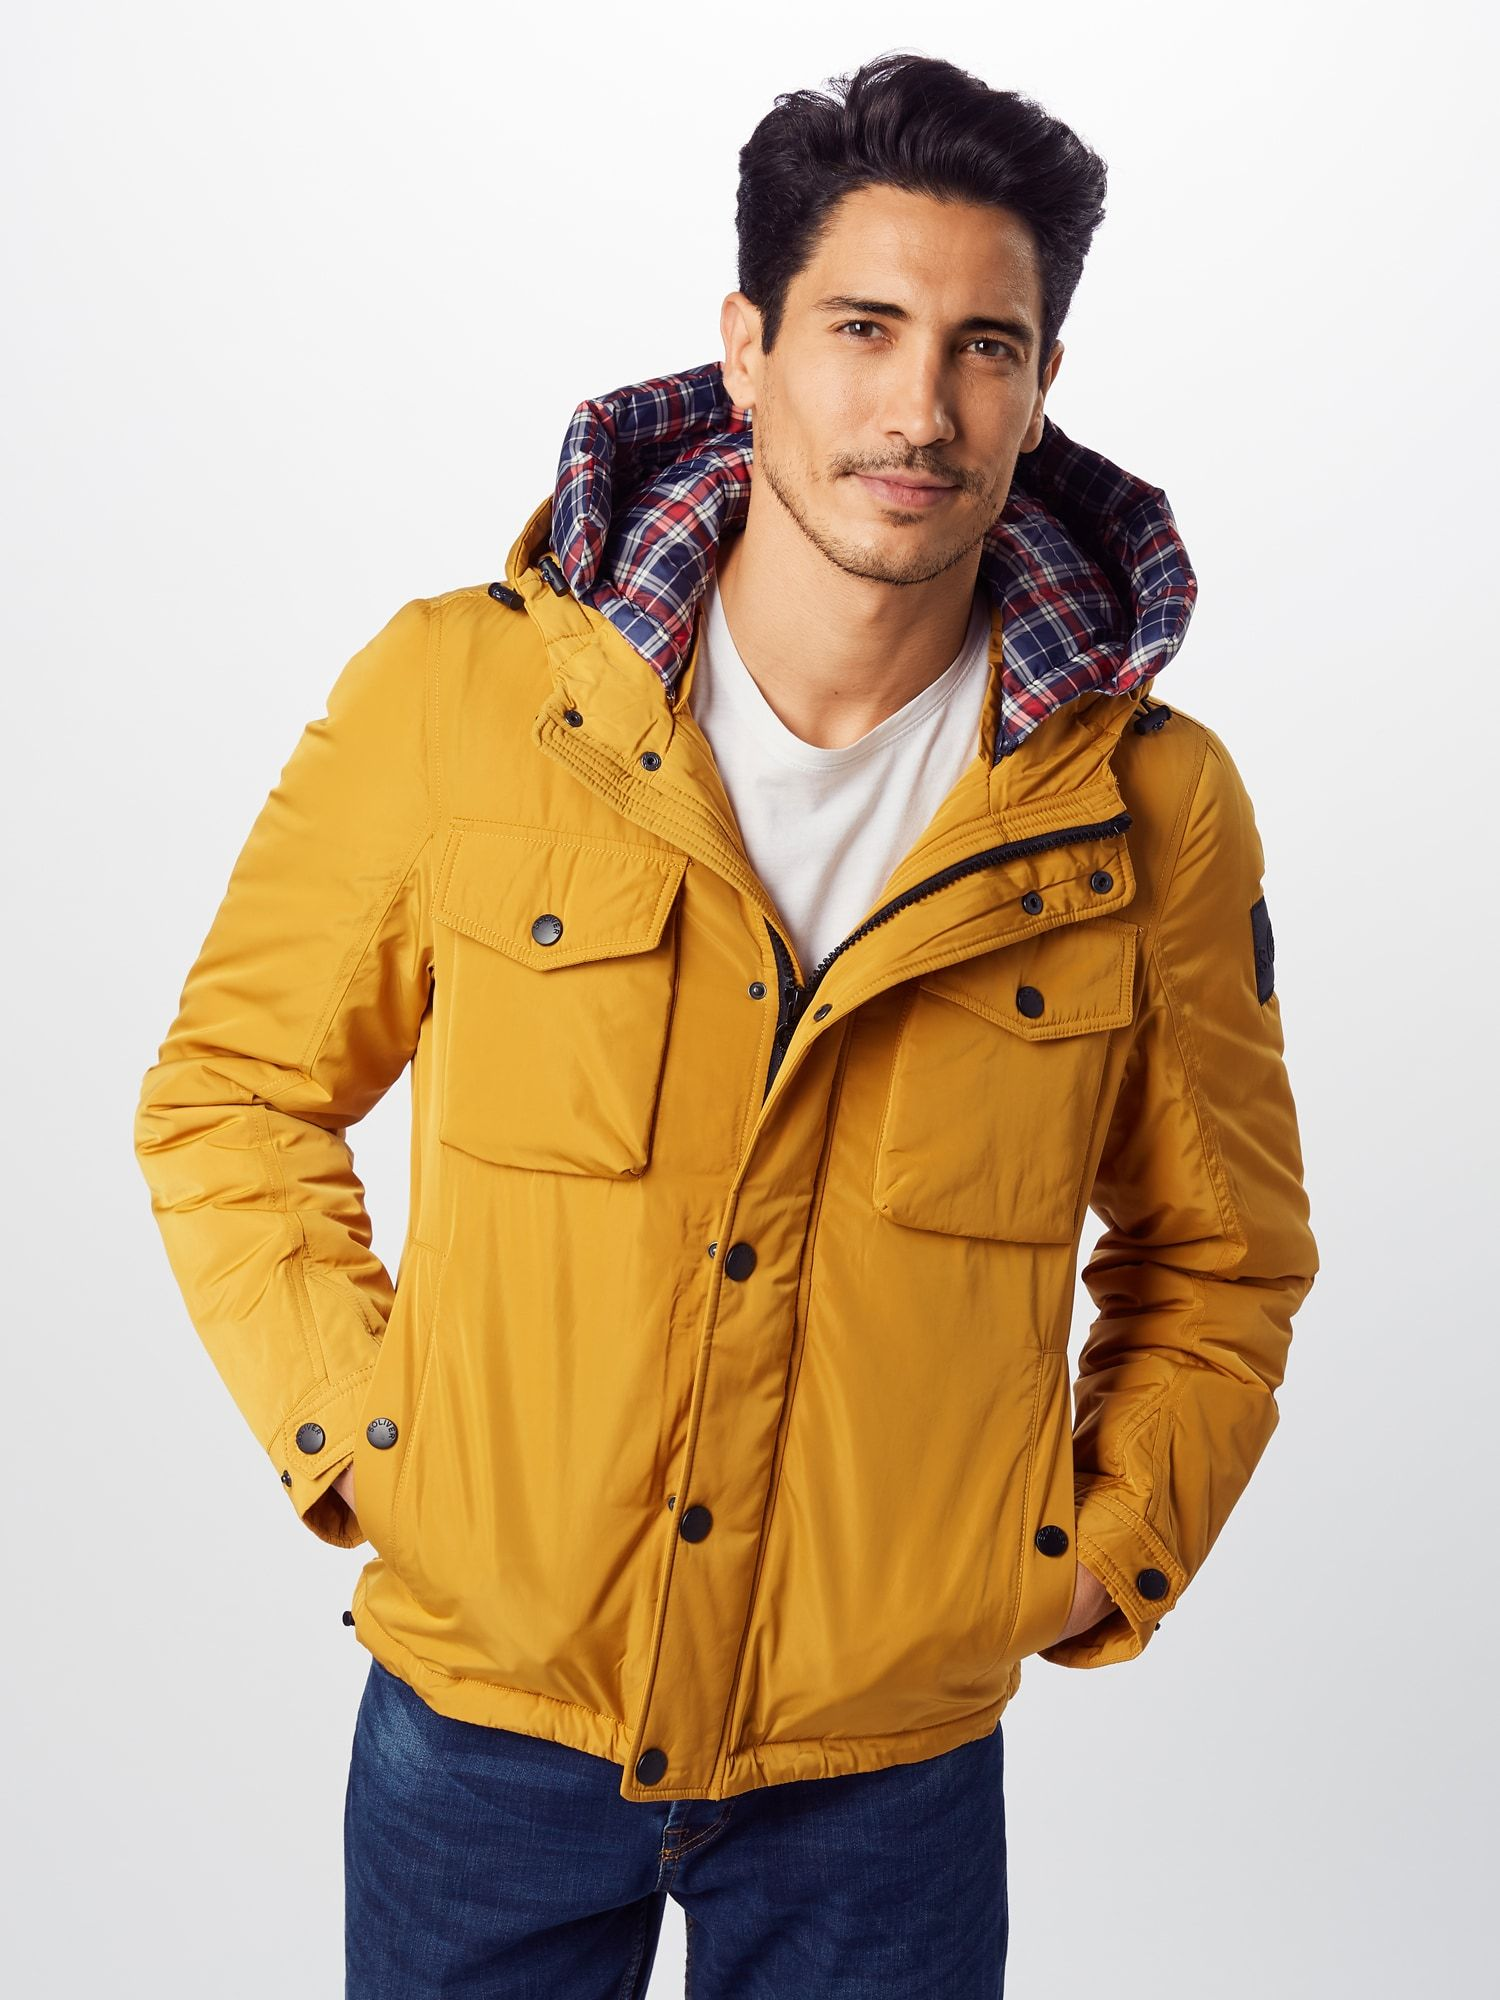 S Oliver Outdoor Jacke Herren Gelb Grosse L Outdoor Jacken Herren Jacken Outdoor Jacken